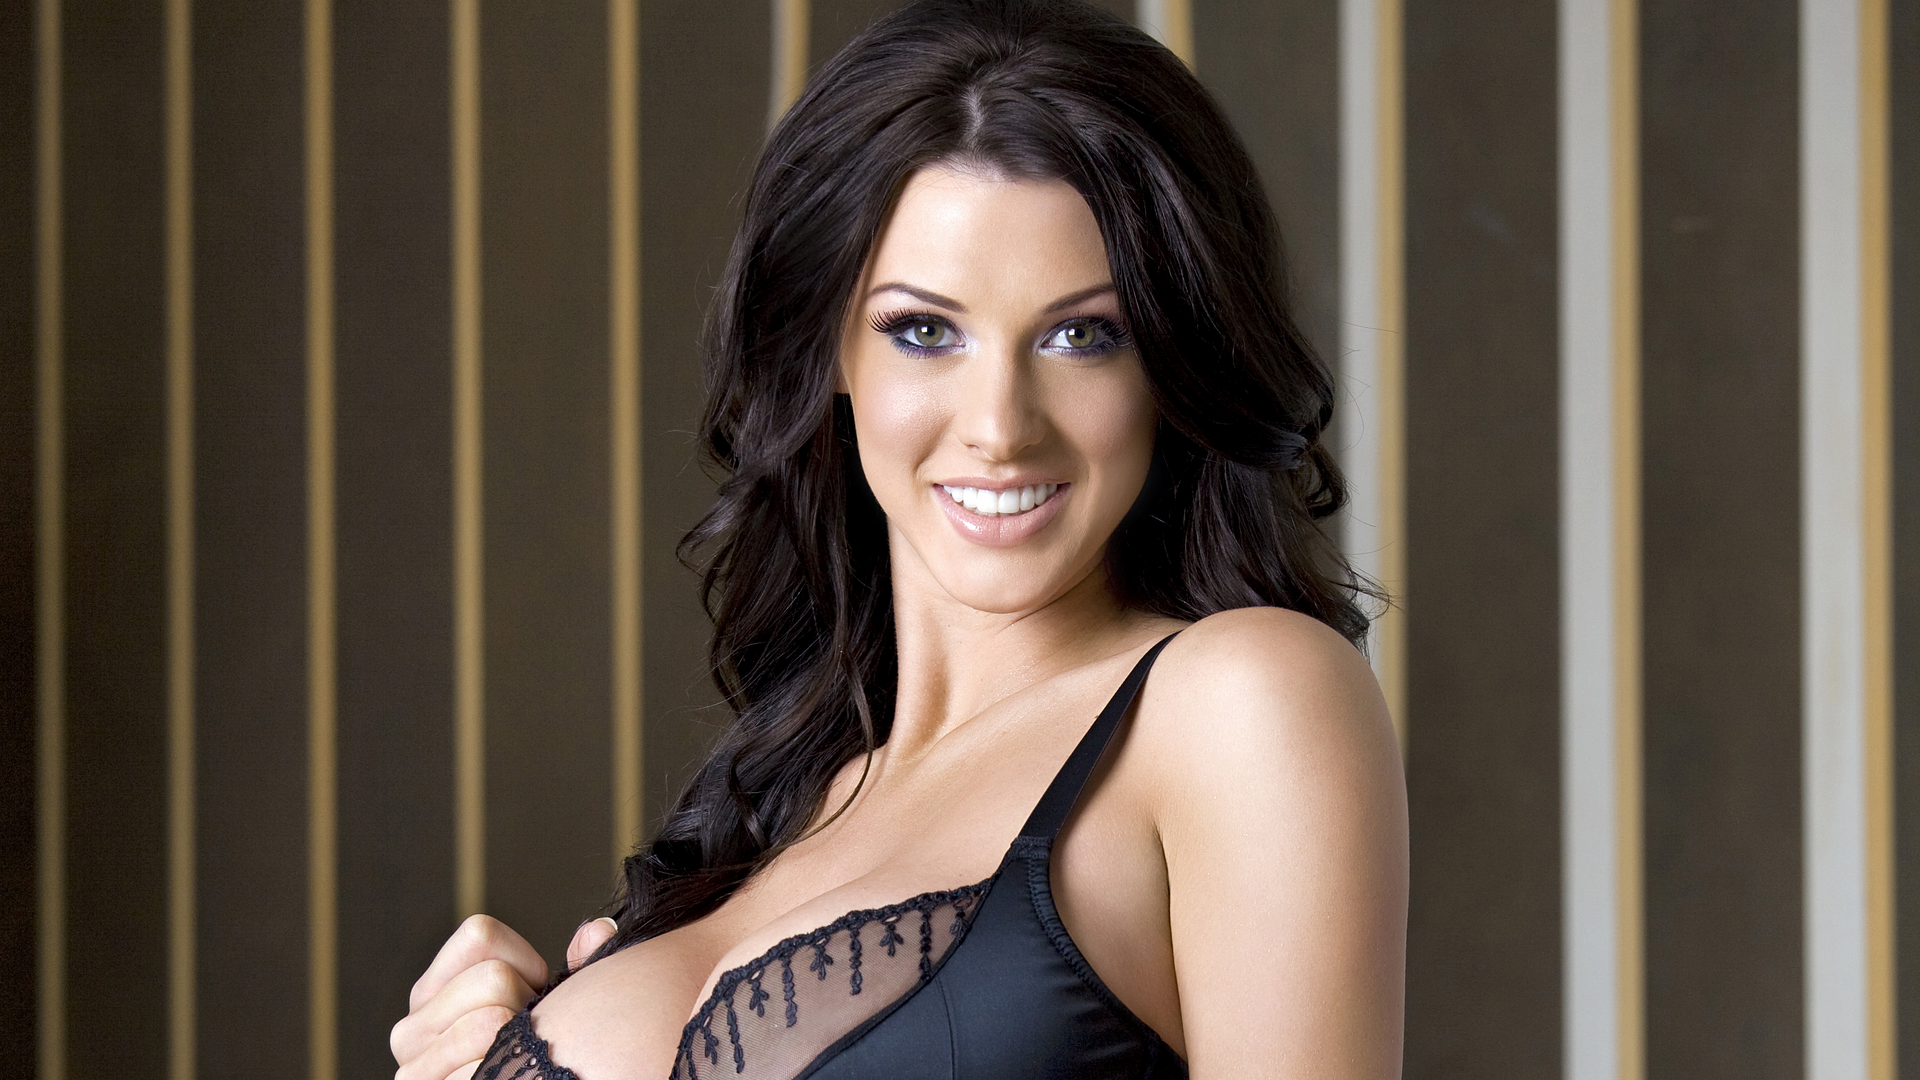 Alice Goodwin Wallpapers HQ